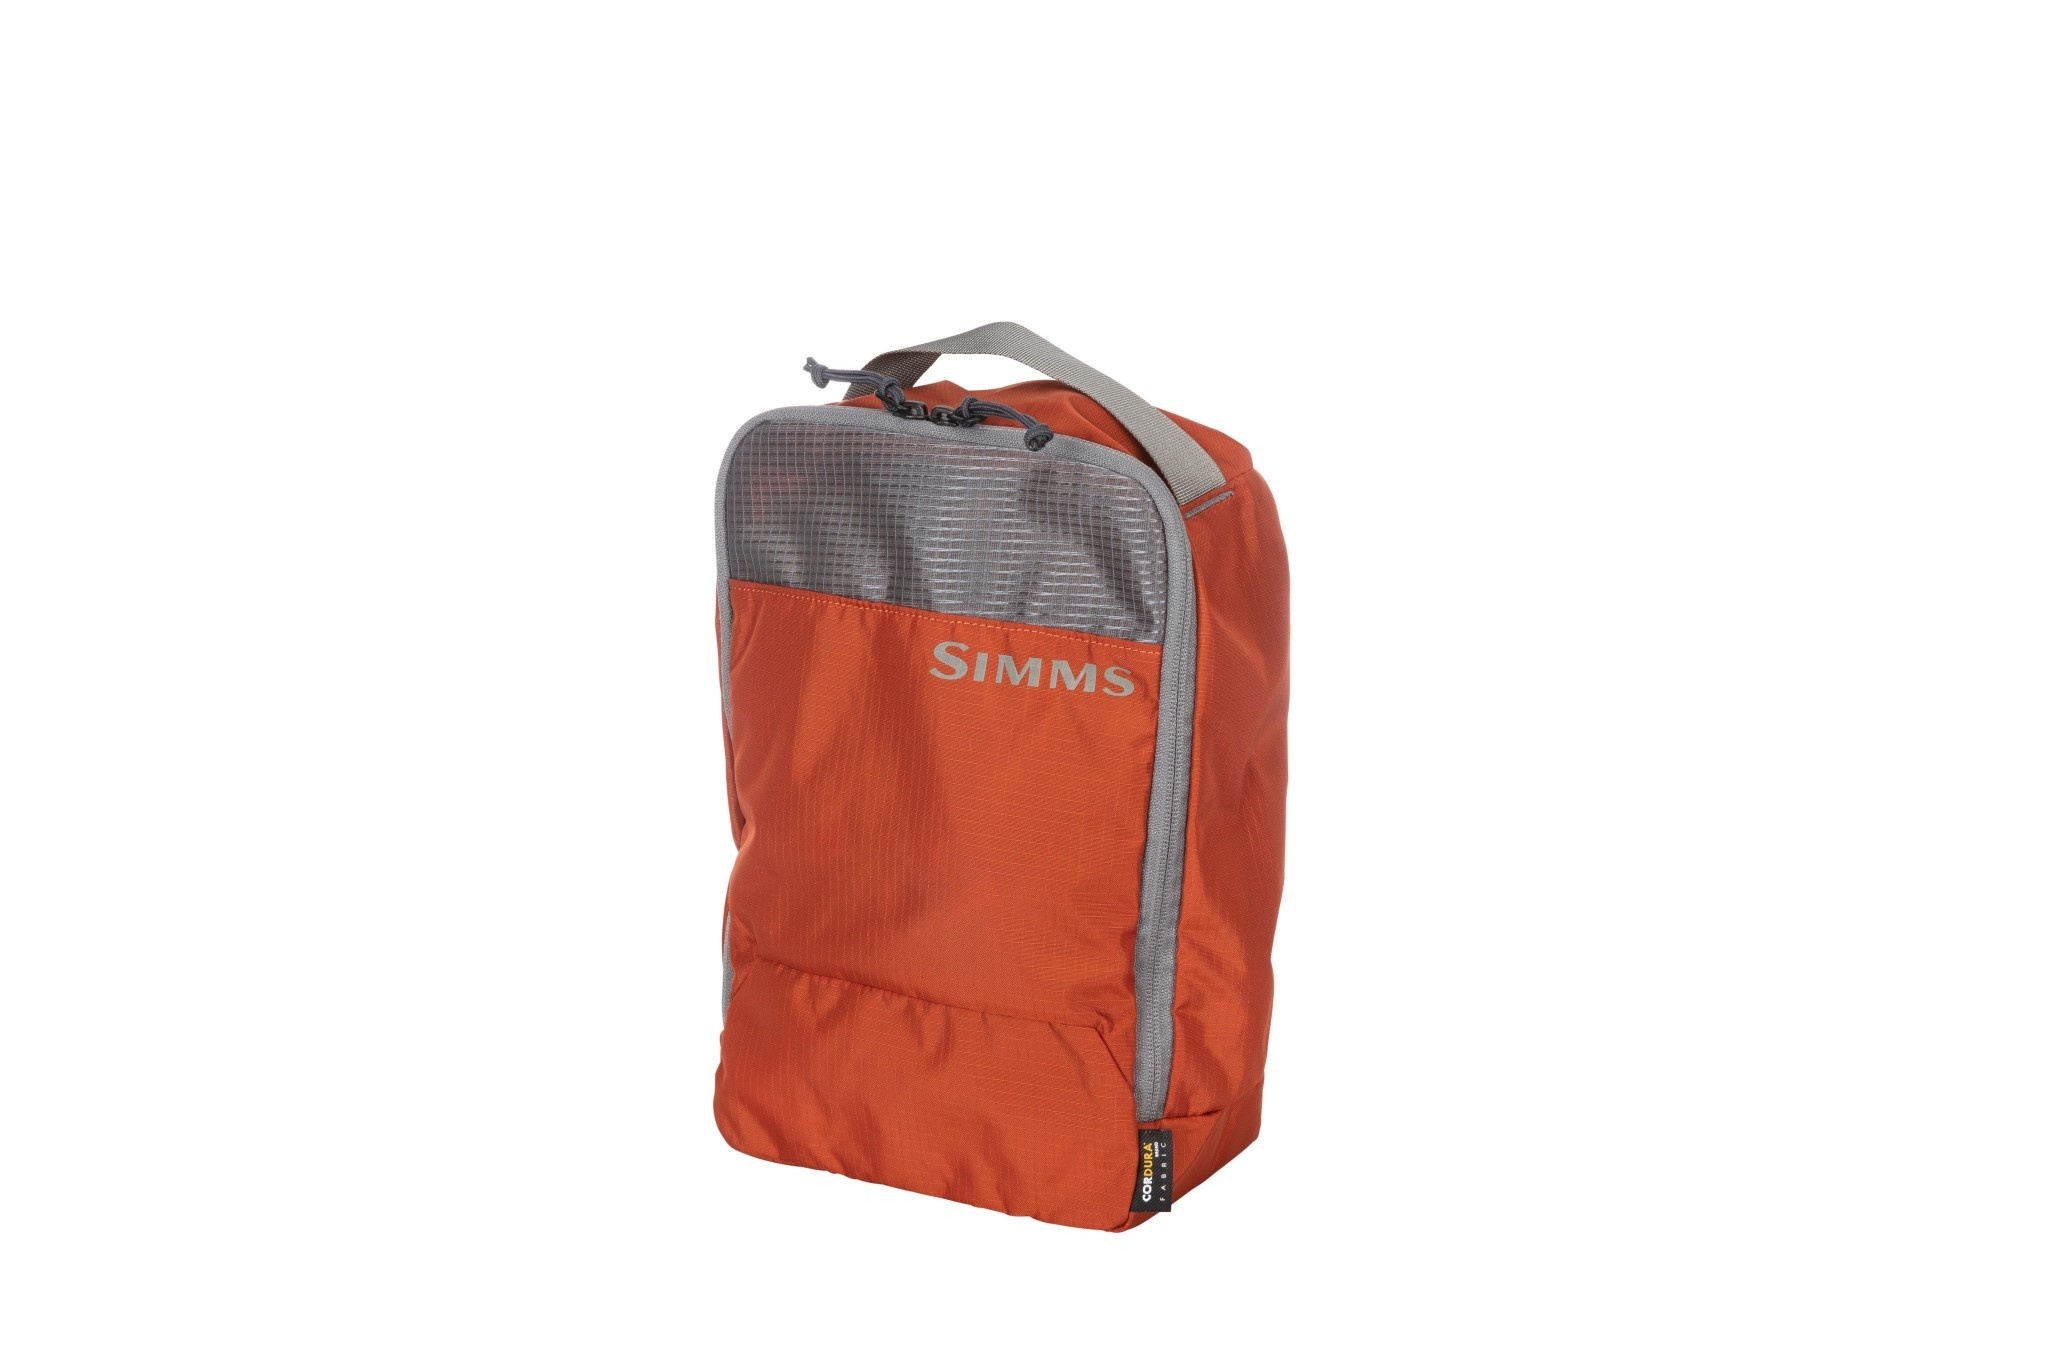 Simms Simms GTS Packing Kit - 3-Pack